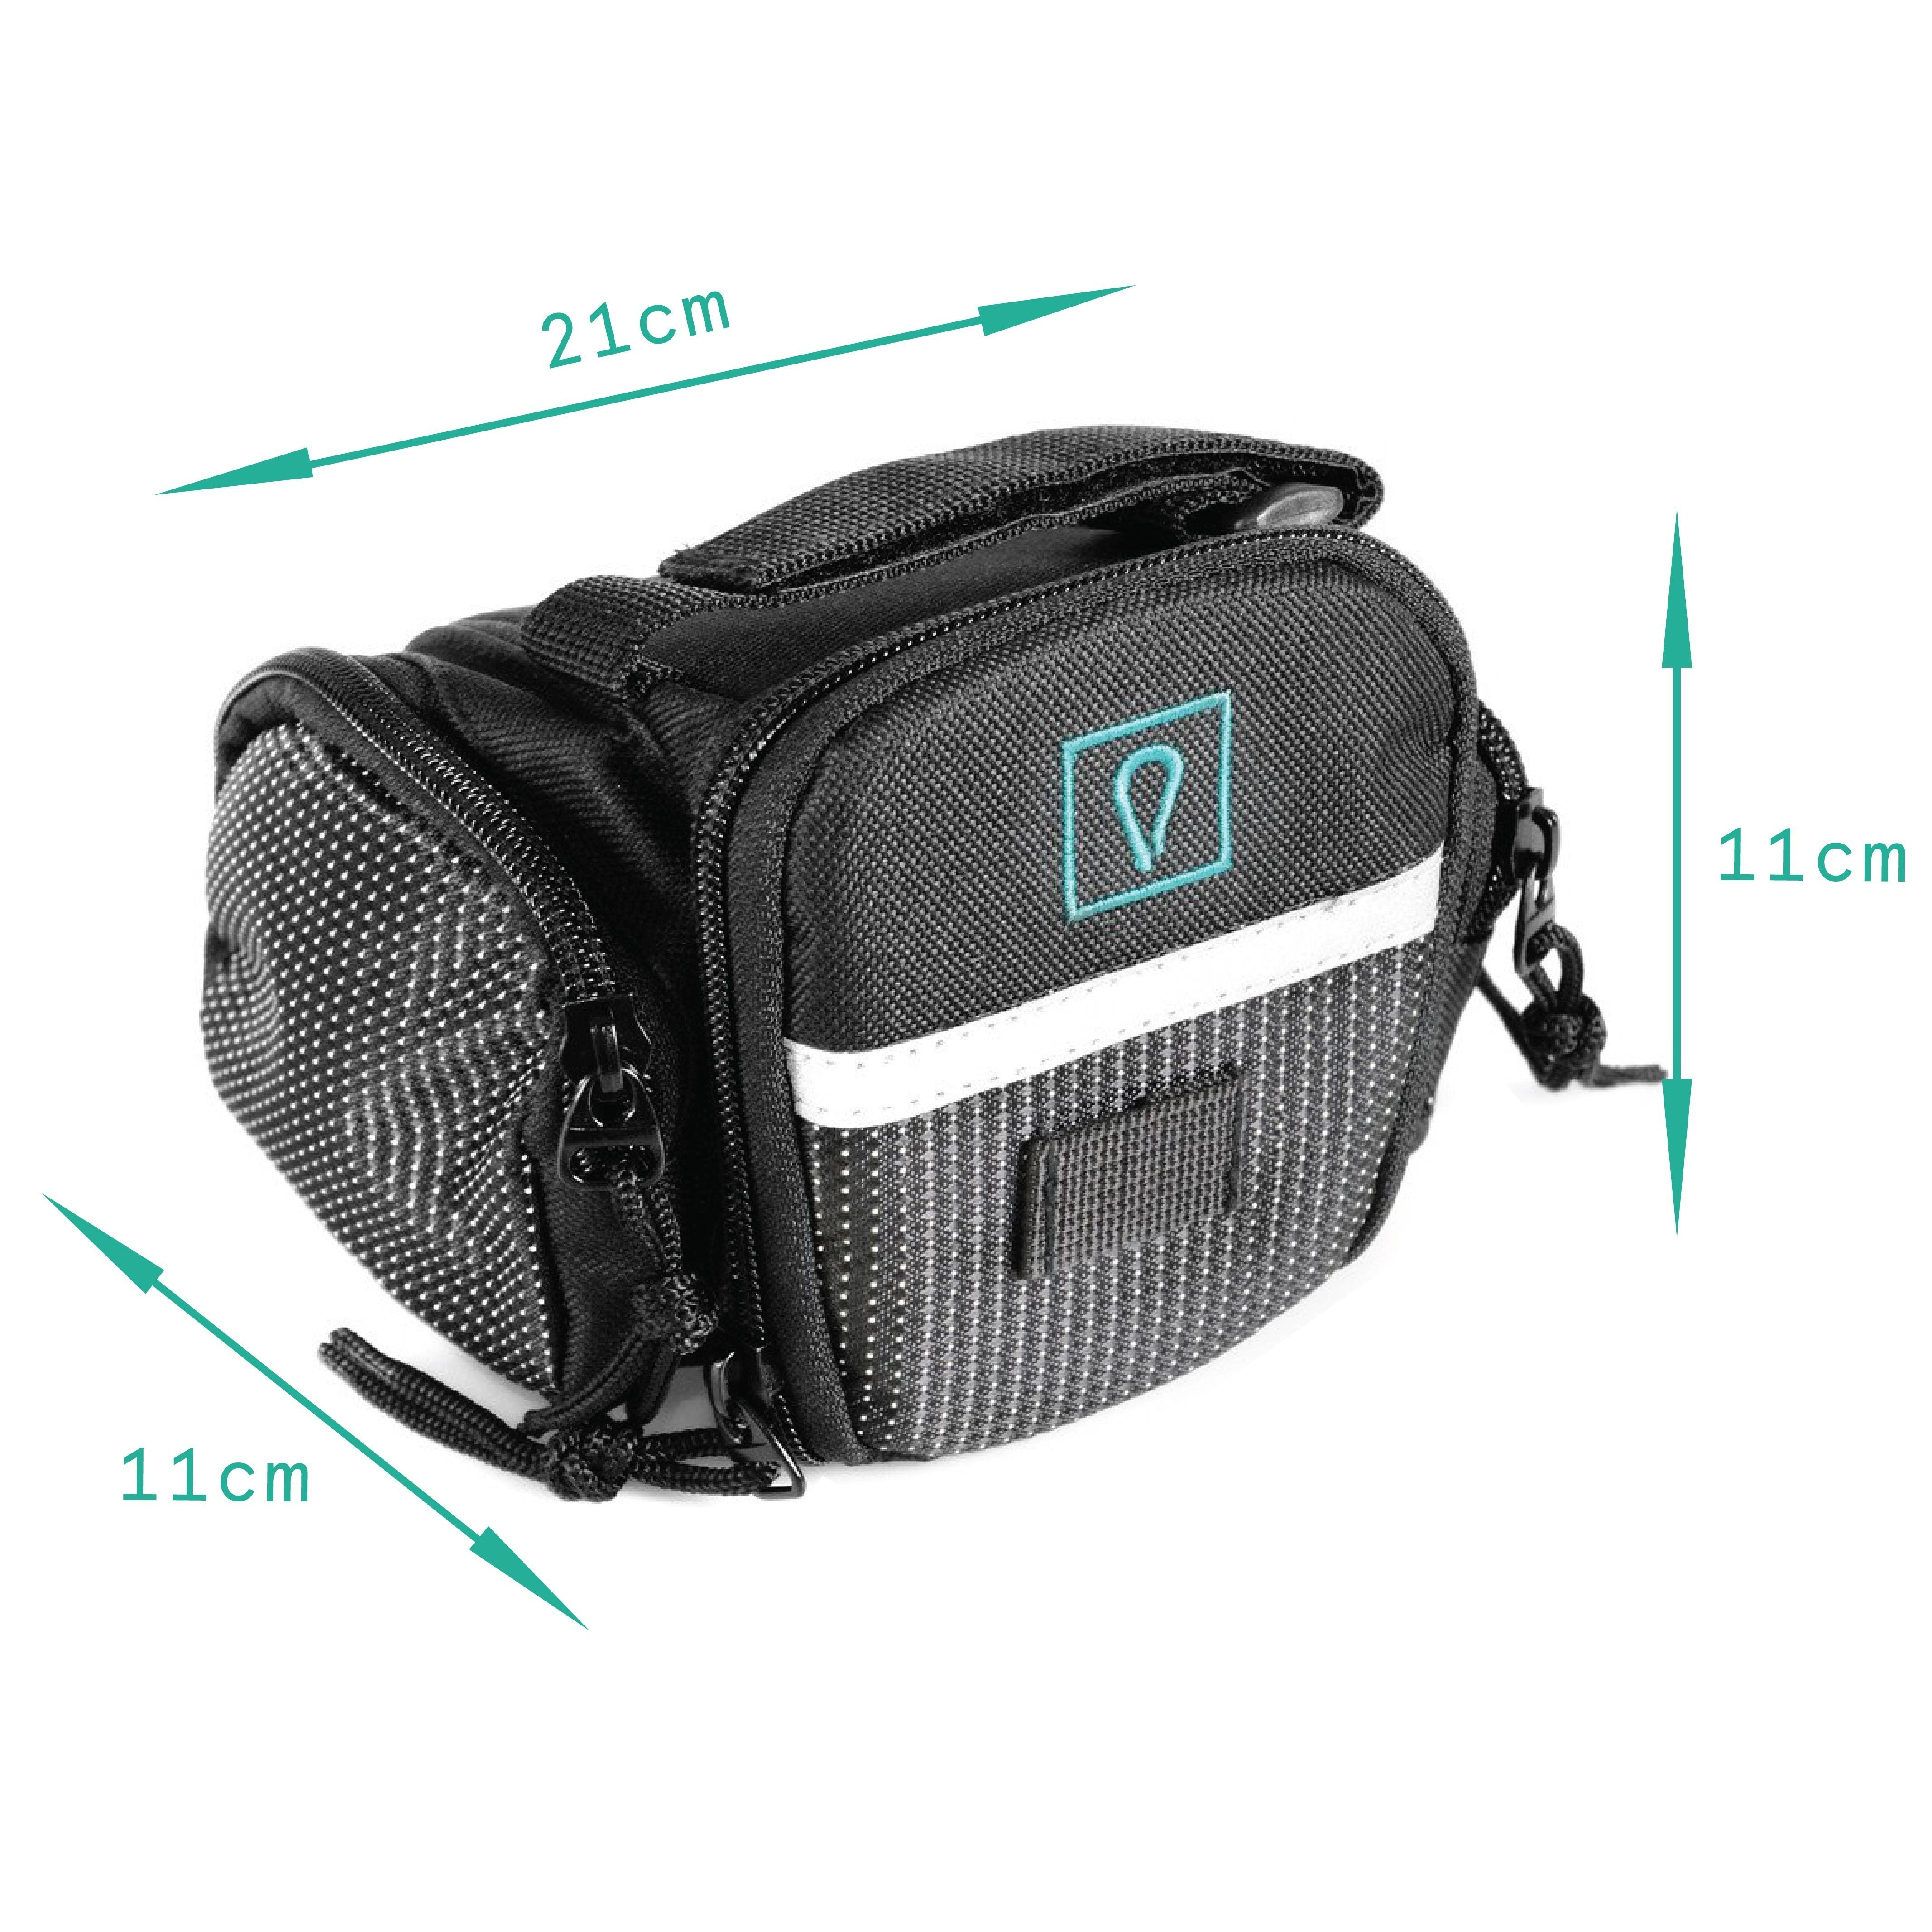 Vincita Co., Ltd. bicycle bag B036 Stash Pack Alien Expand